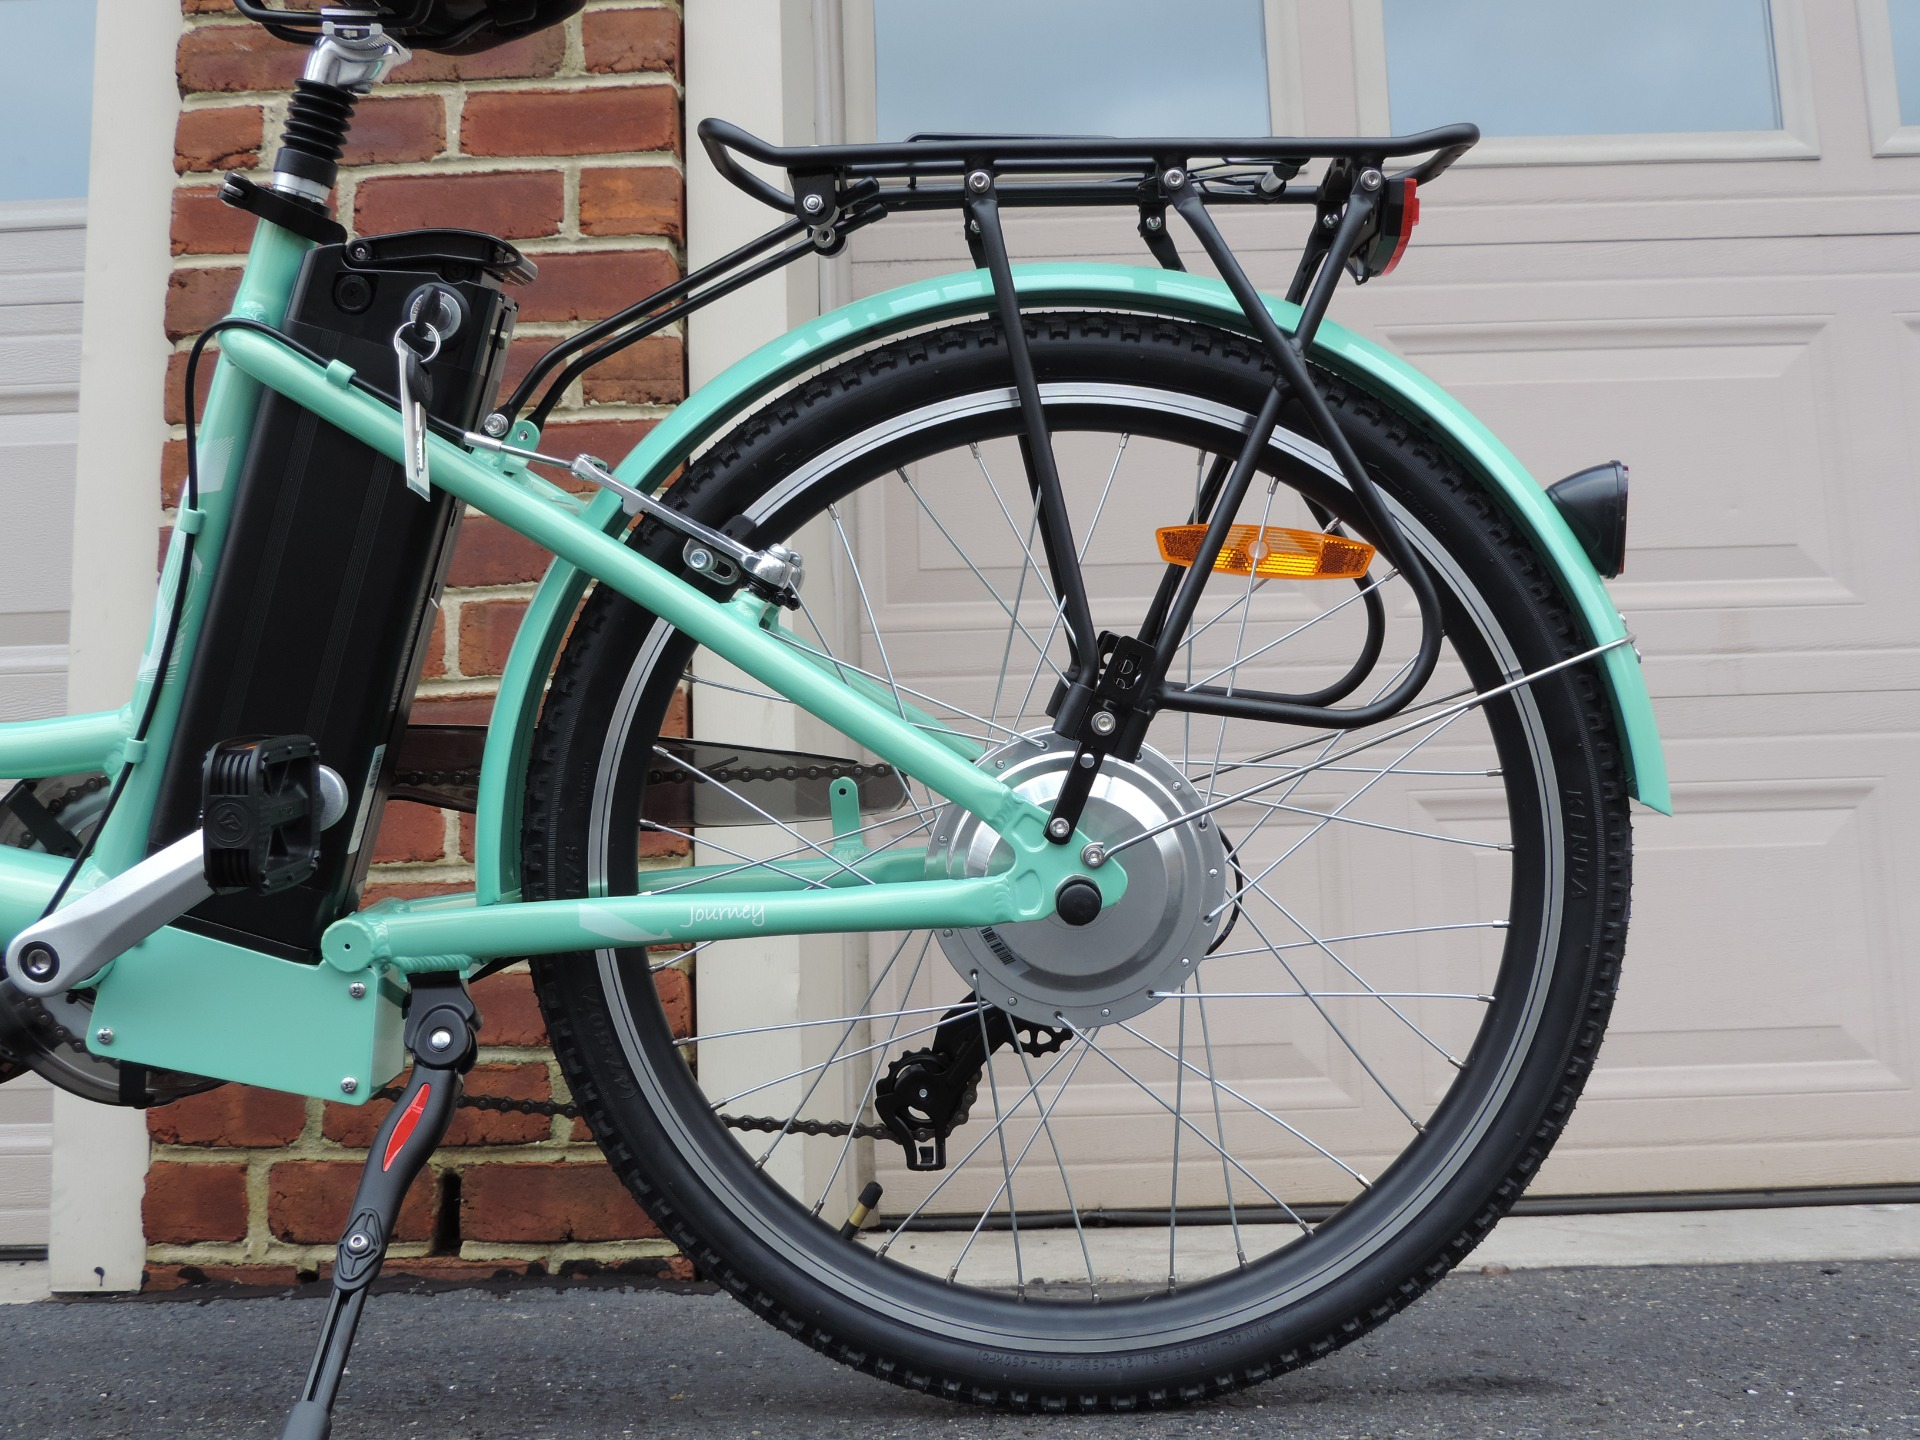 New-2019-Bintelli-Journey-Electric-Cruiser